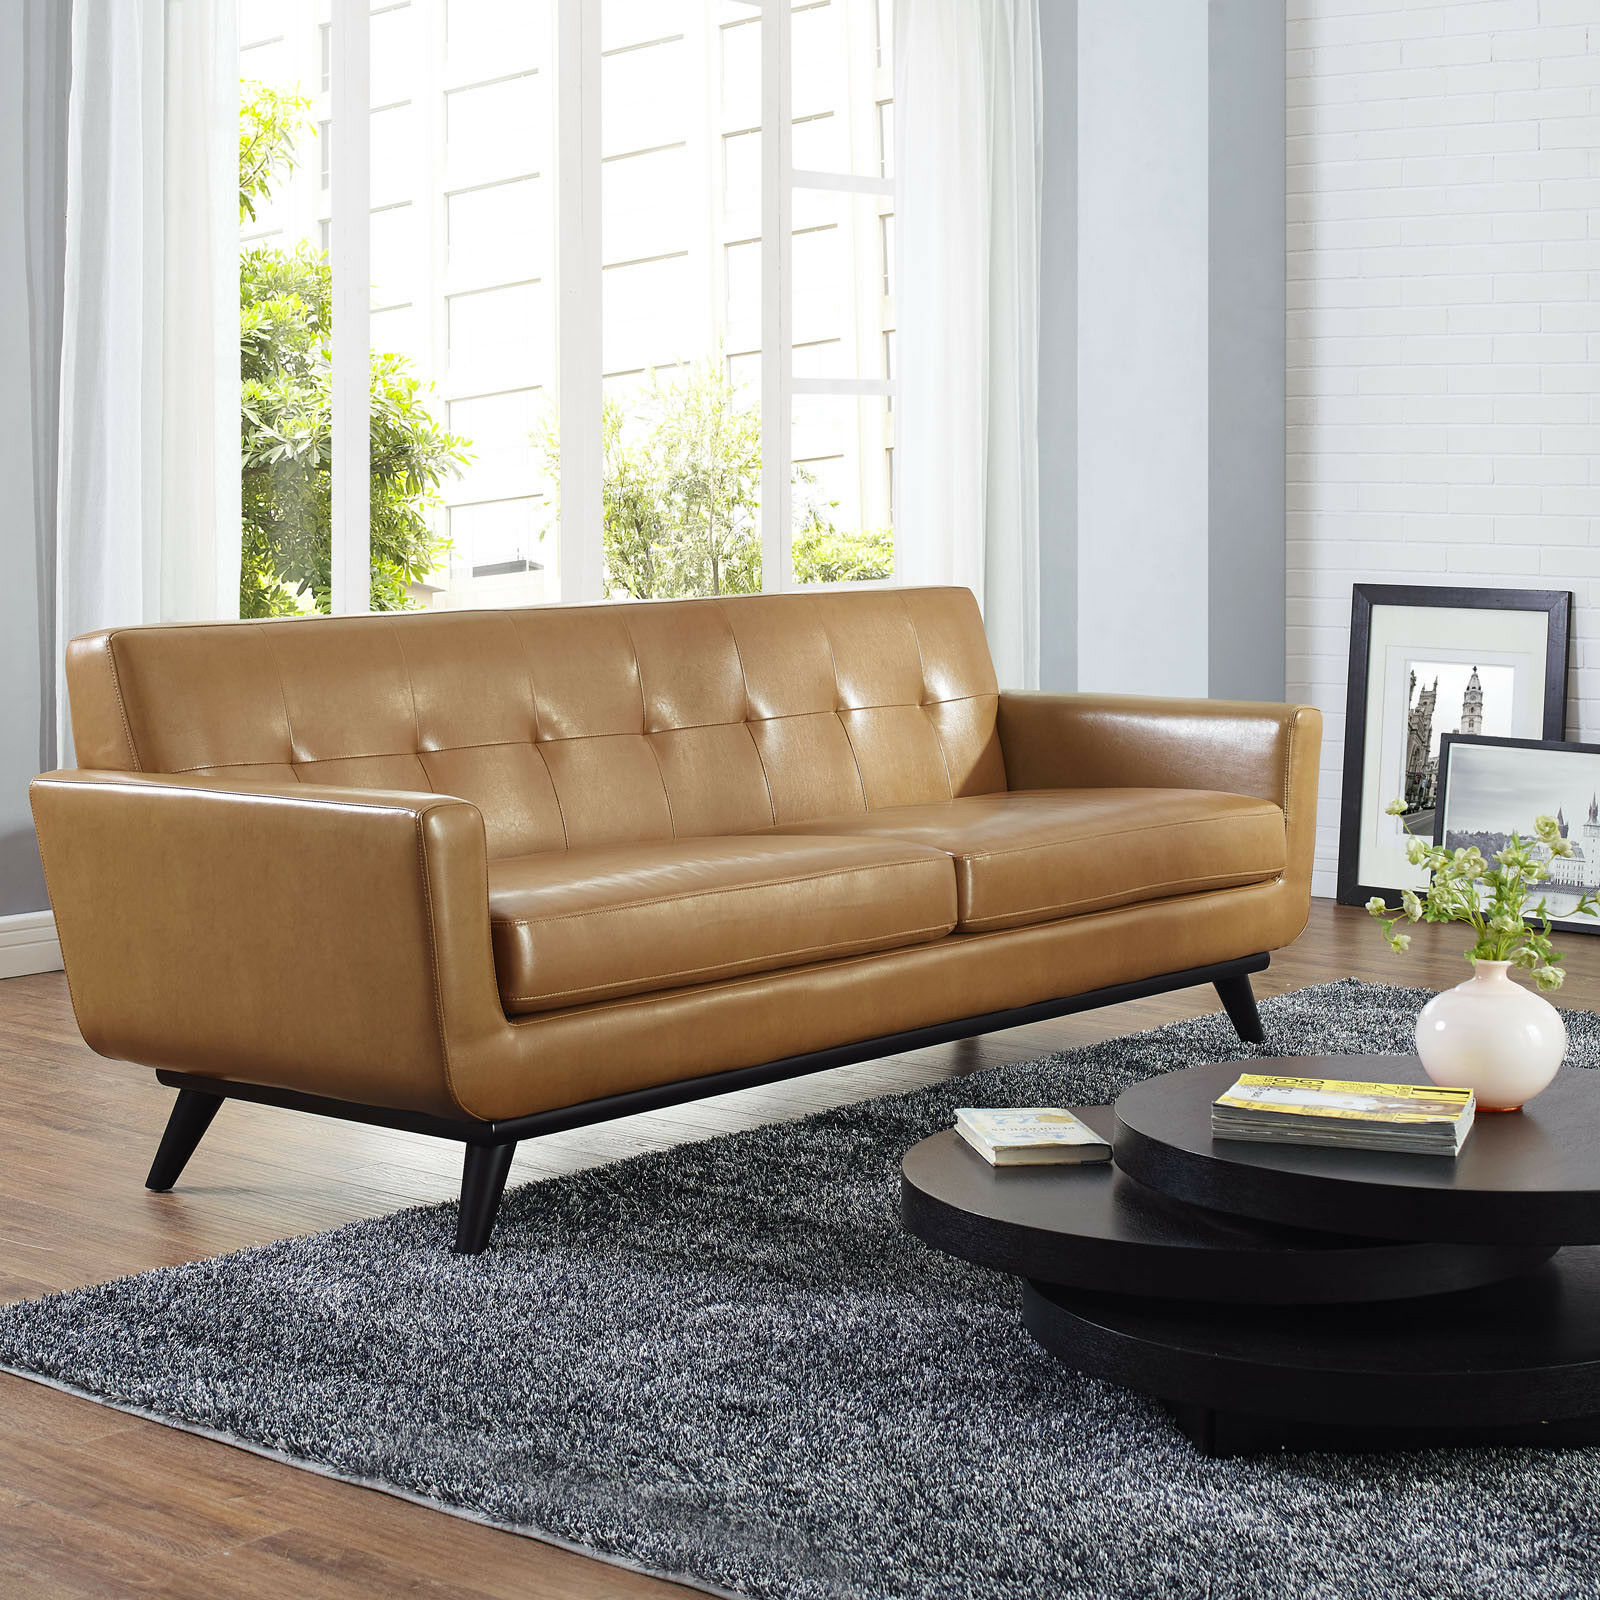 Details About Mid Century Modern Upholstered Leather Living Room Furniture Sofa In Tan